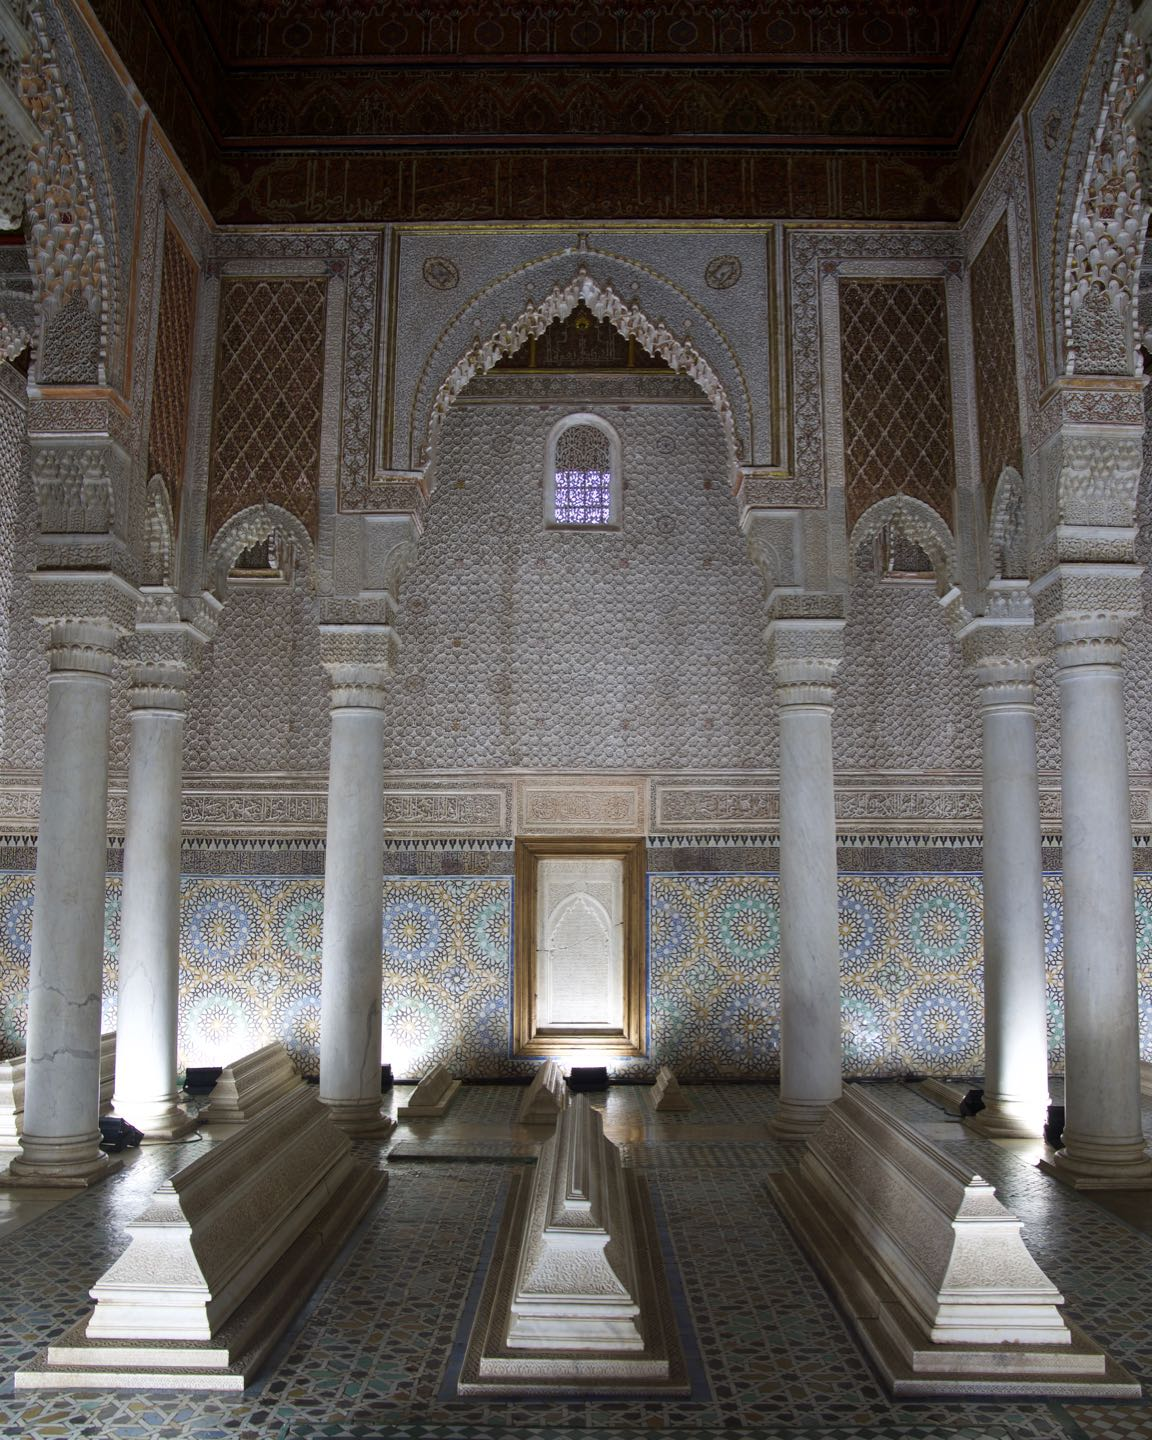 Saadien's Tombs is one of the famous attractions in Marrakesh.